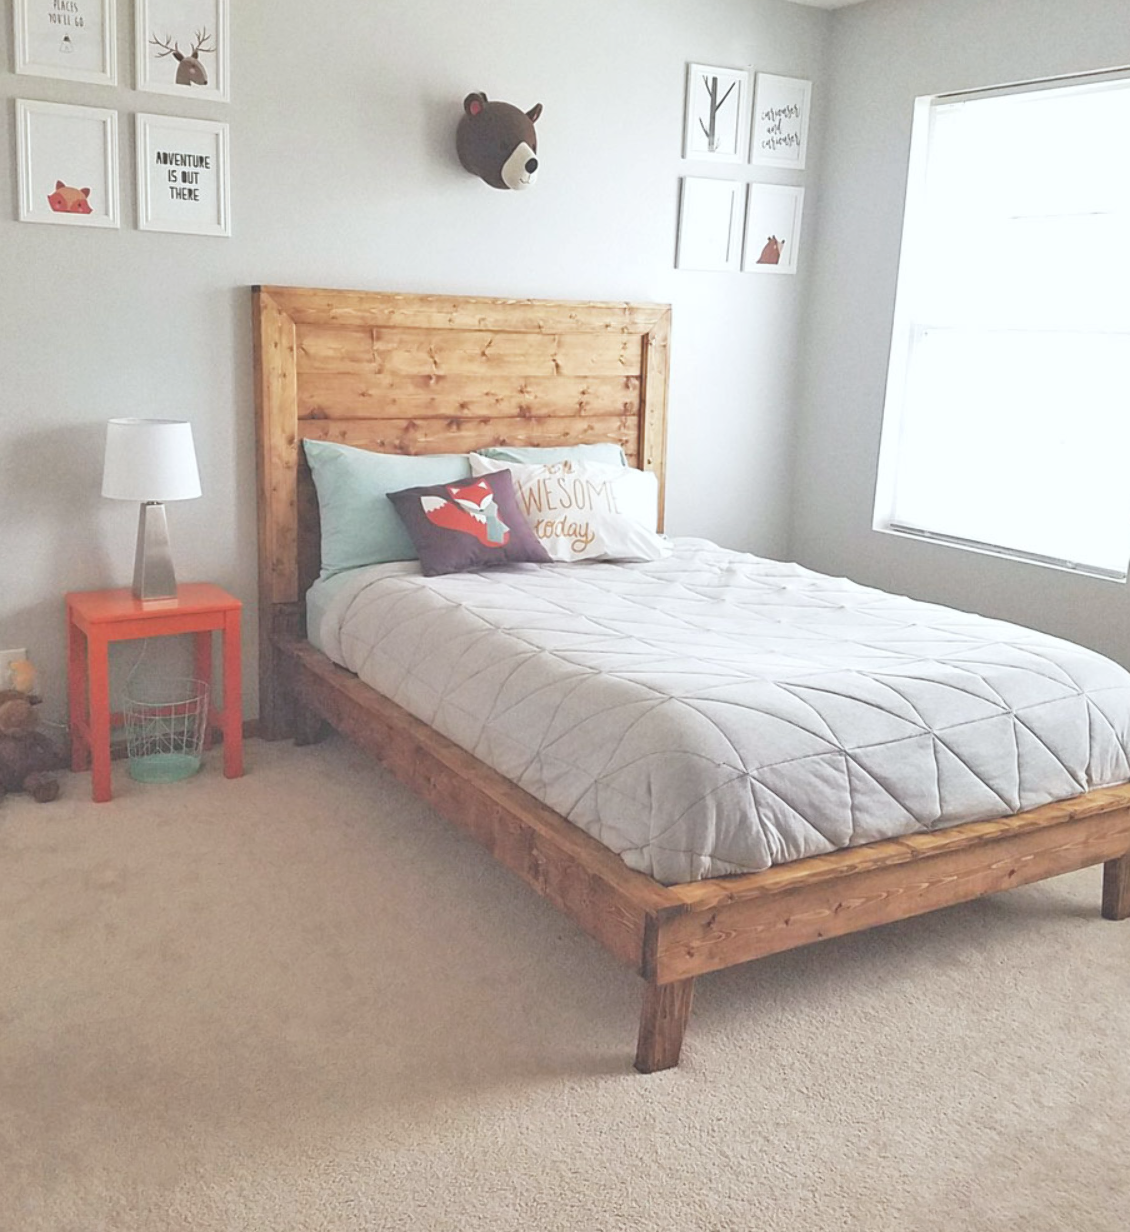 DIY farmhouse bed in kids room easy to build plans by